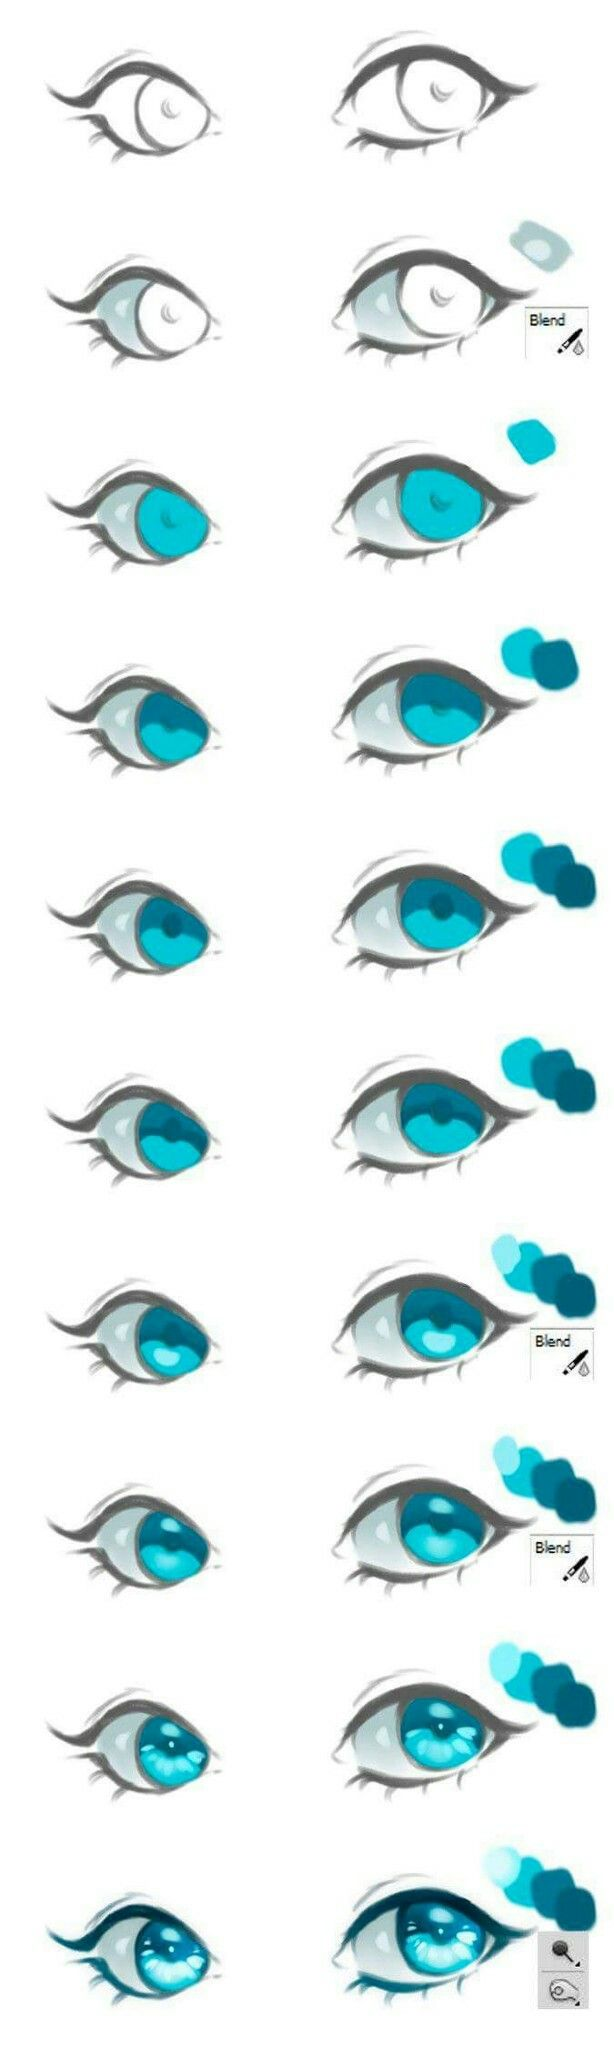 Easy eye tutorial drawing tutorials digital painting also  design on the computer pinterest arte rh co